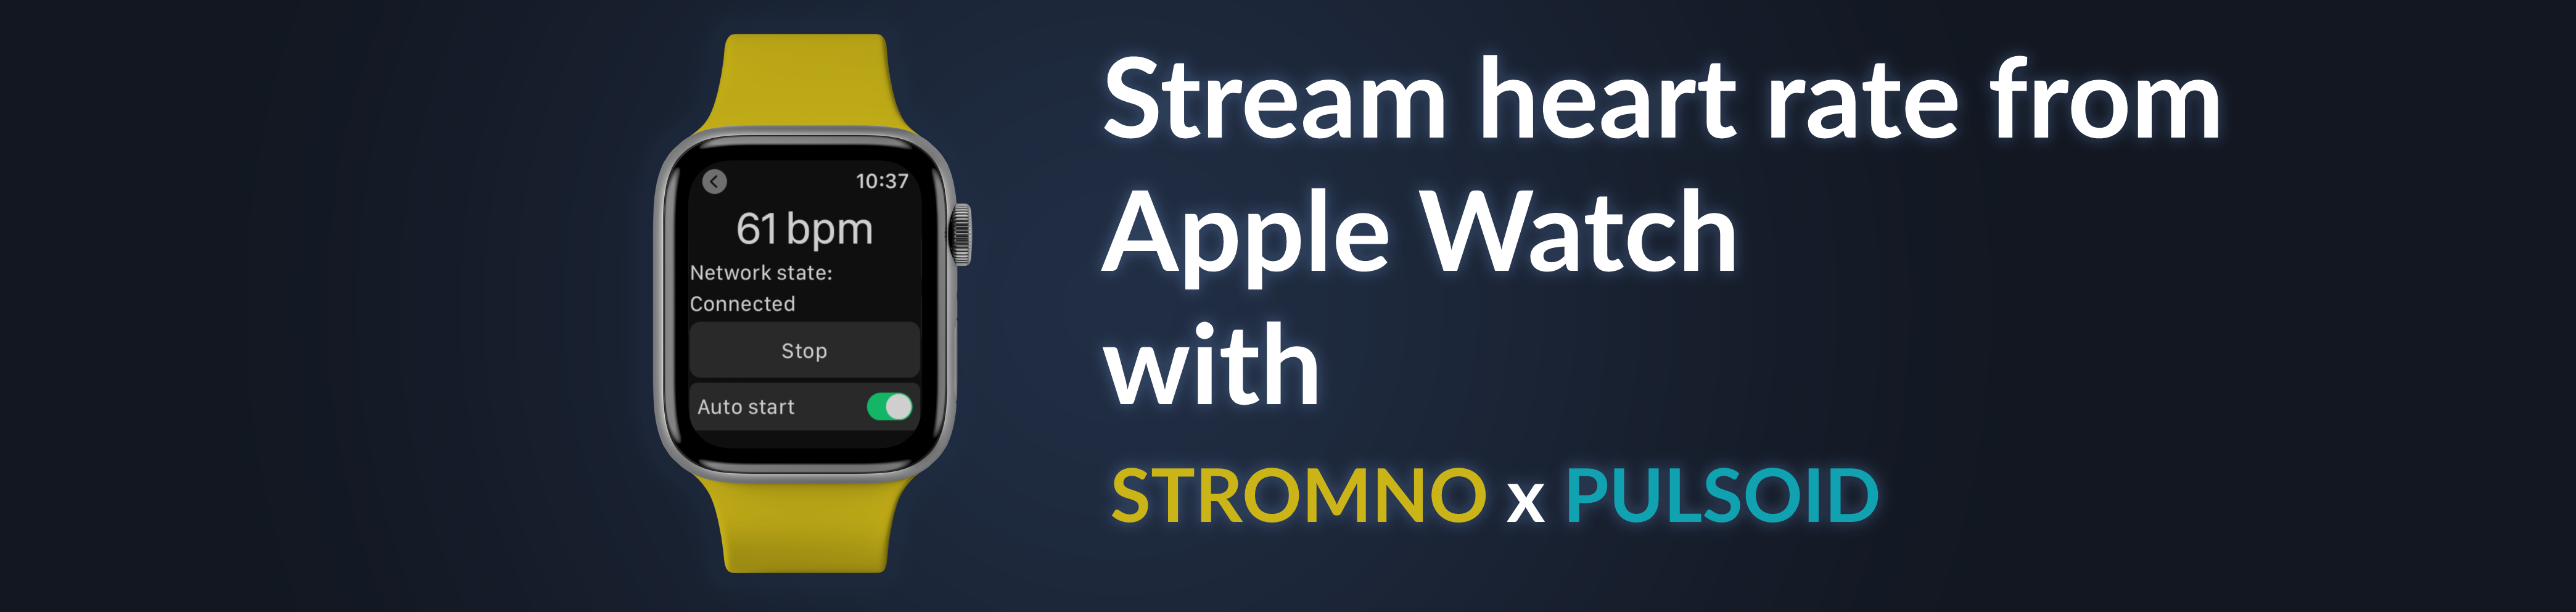 Stream Heart Rate from Apple Watch